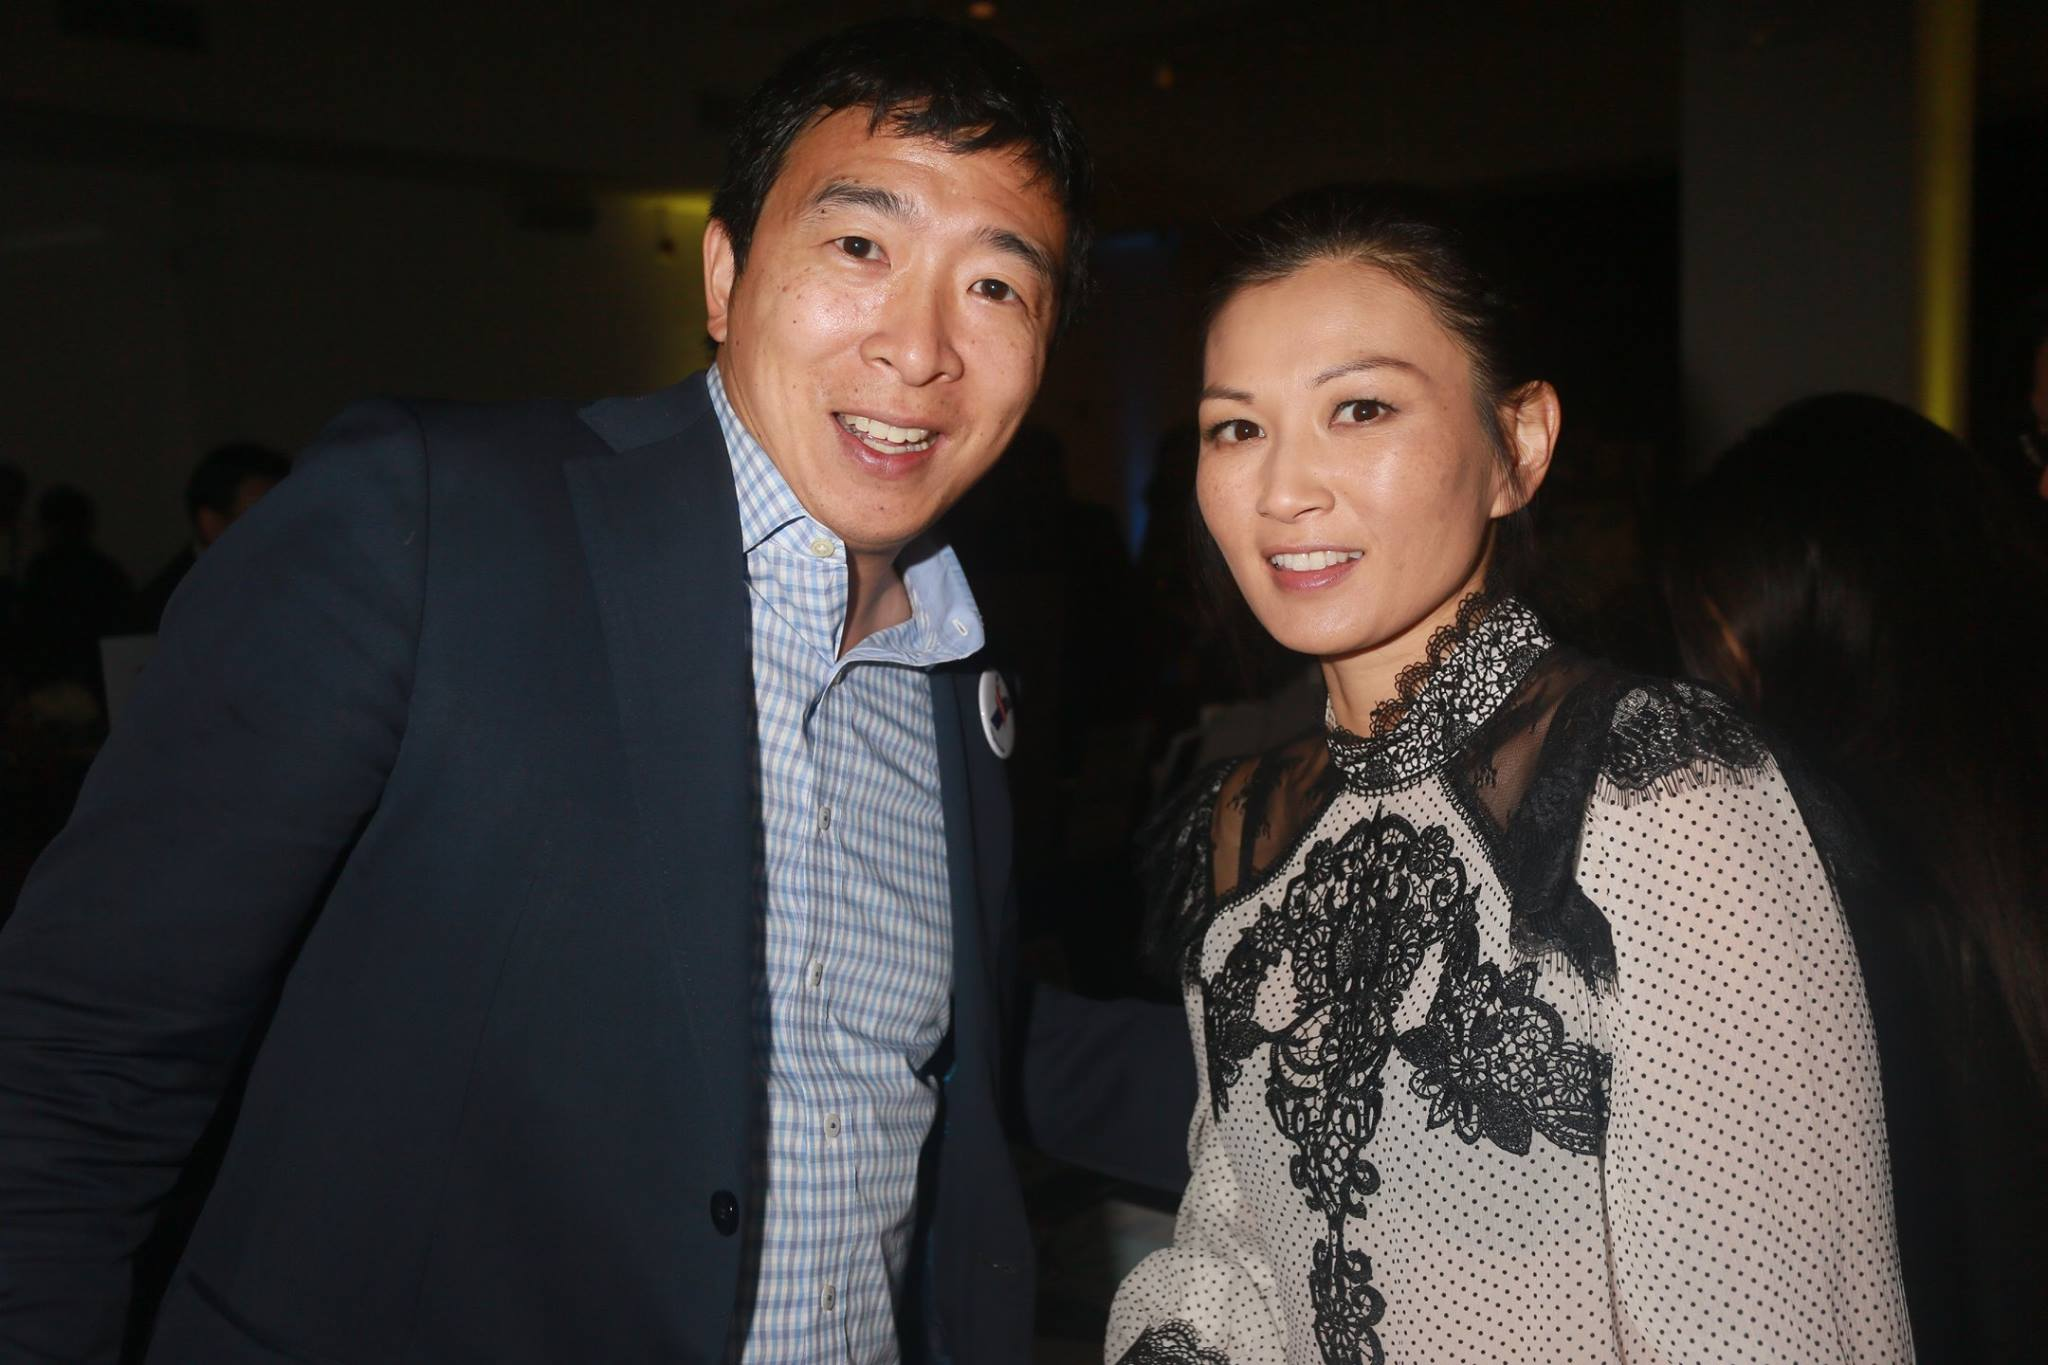 Presidential candidate Andrew Yang with Michelle Krusiec from Hawaii Five-0